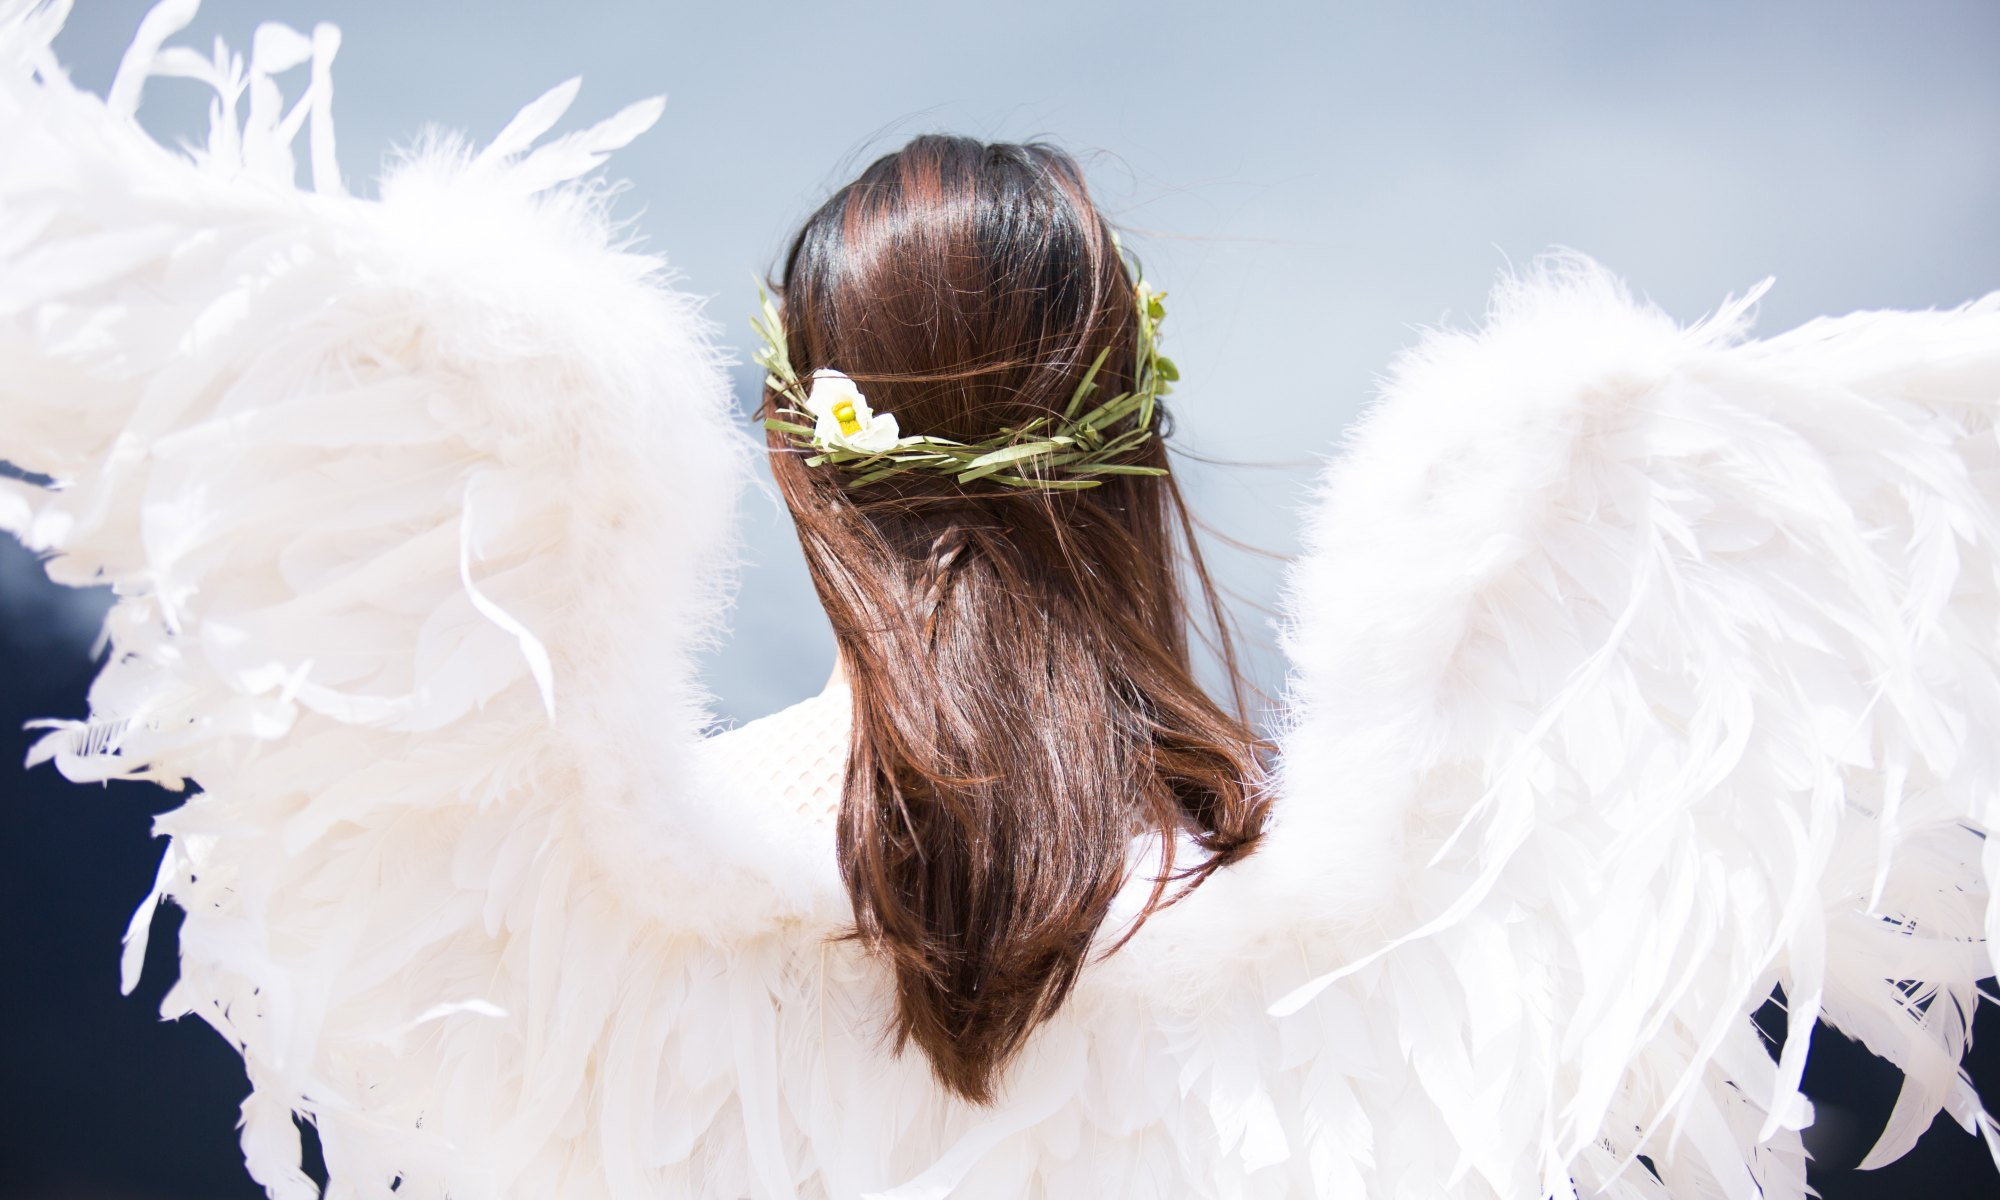 White Angel in Wings-Premonition-faith-magic